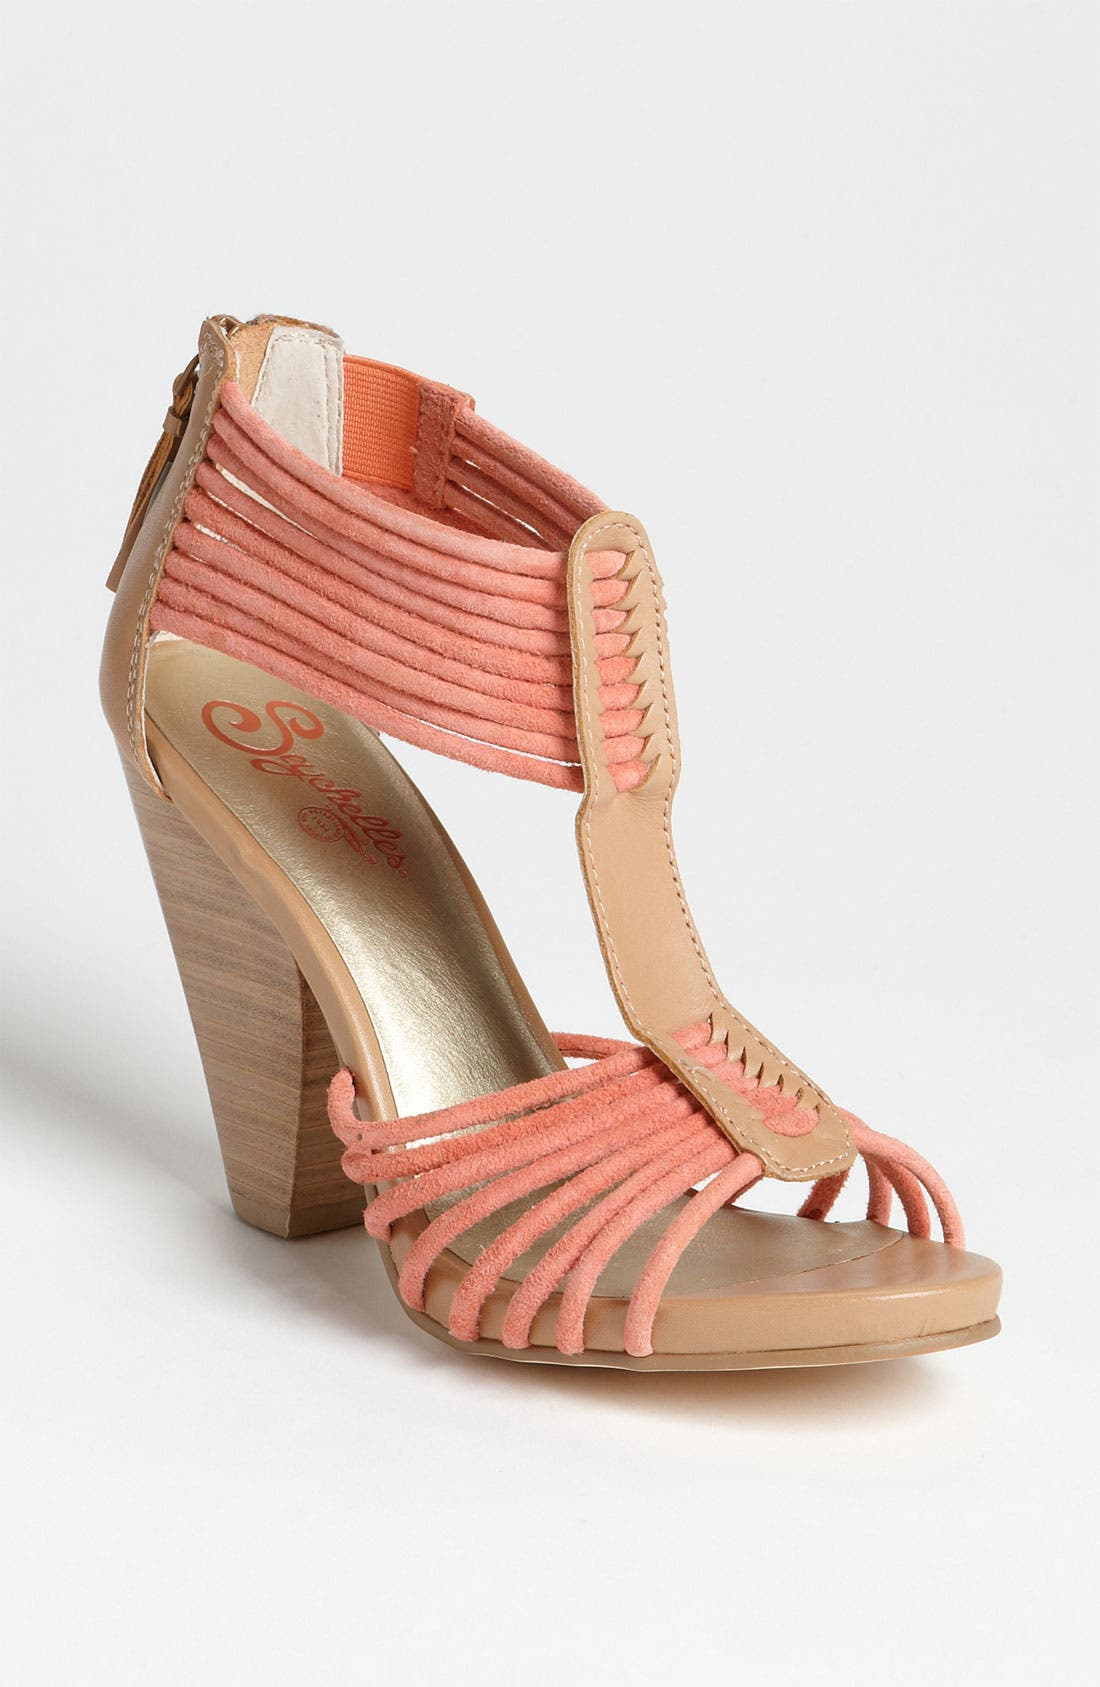 SEYCHELLES, 'Time Will Tell' Sandal, Main thumbnail 1, color, 240